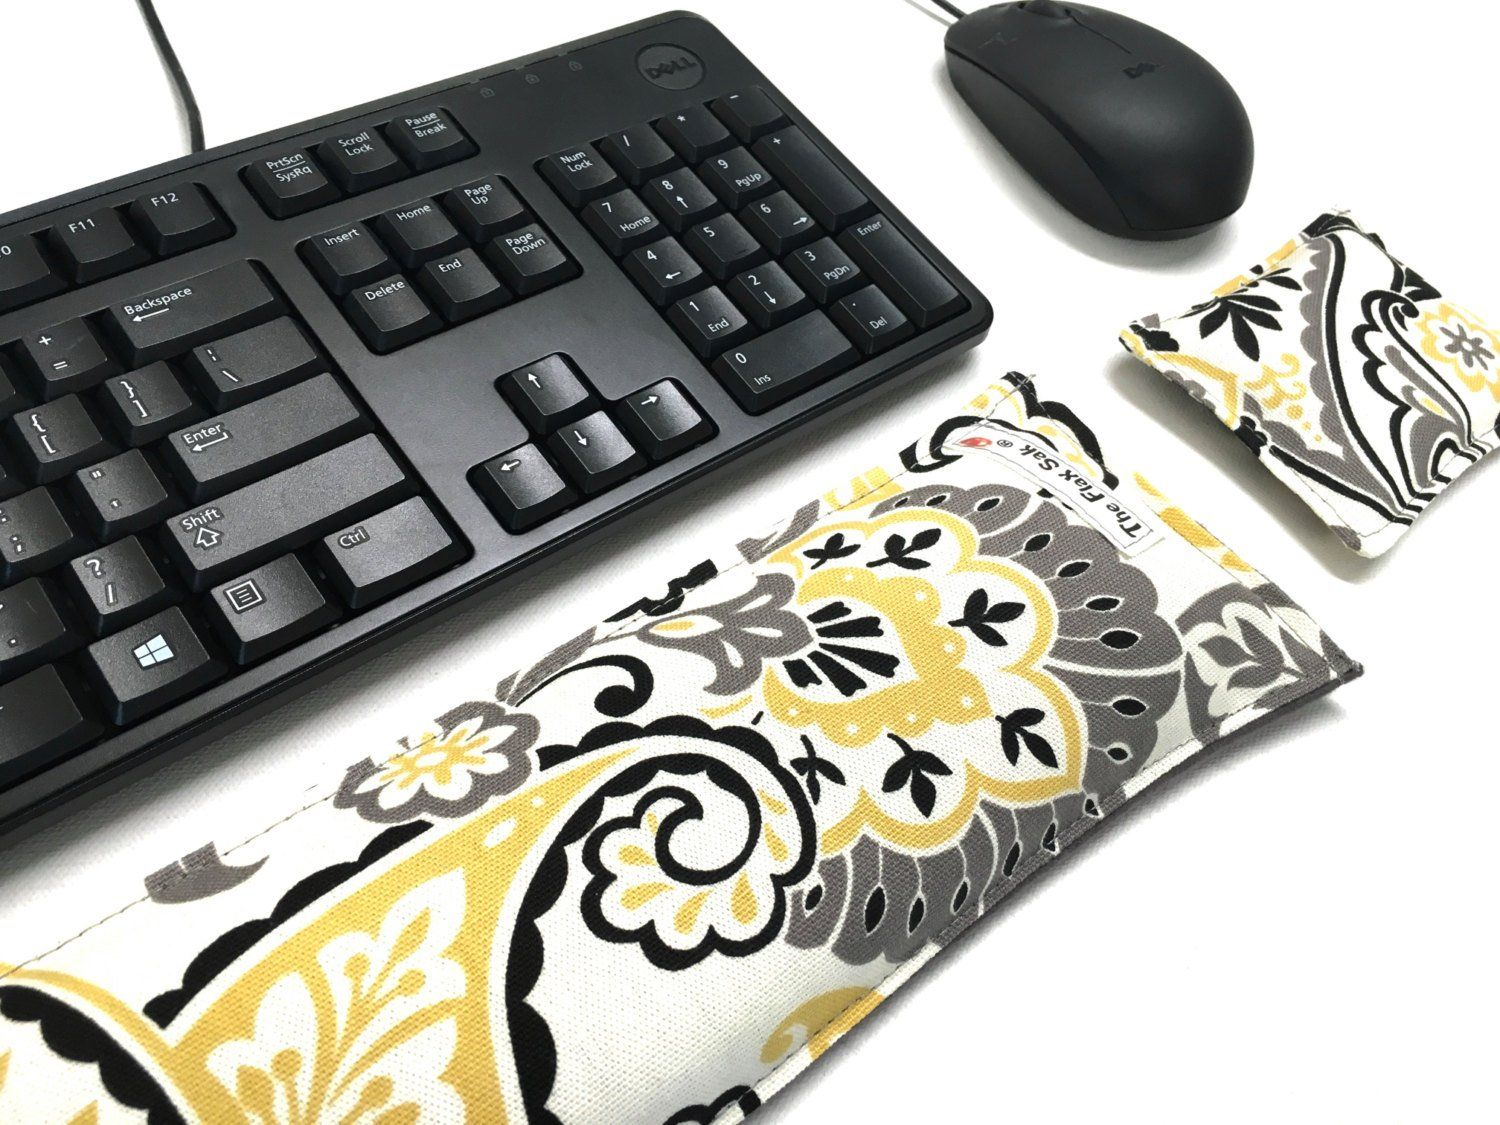 Keyboard Pad Mouse Pad - Christmas Gifts under 20 - Ergonomic Wrist Rest - Support Wrist Typing -Back to school ideas- carpal tunnel